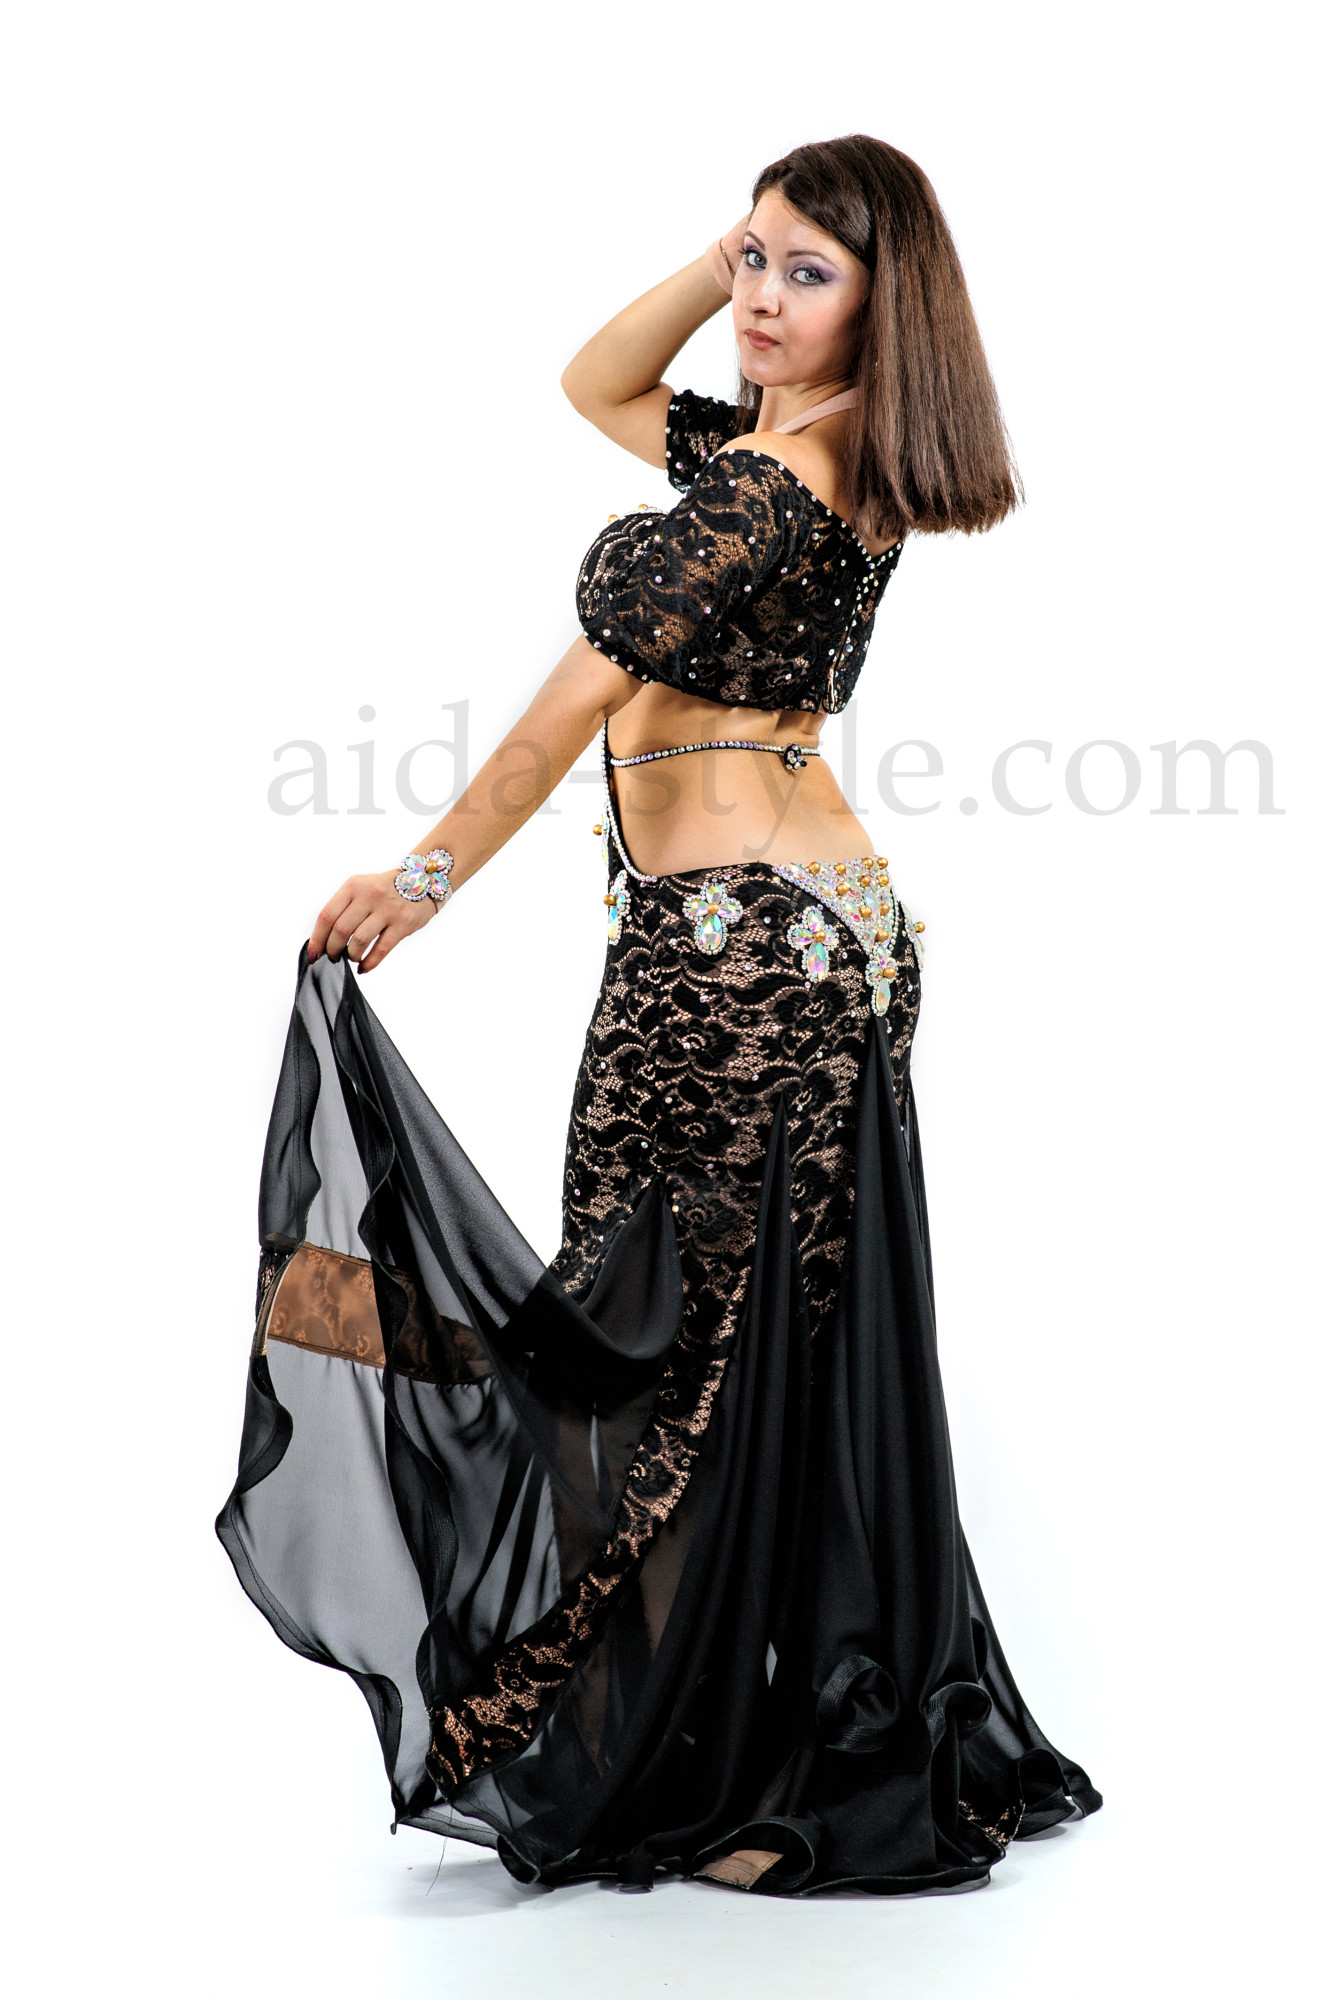 One piece custom made black professional belly dance costume decorated with big stones and beads